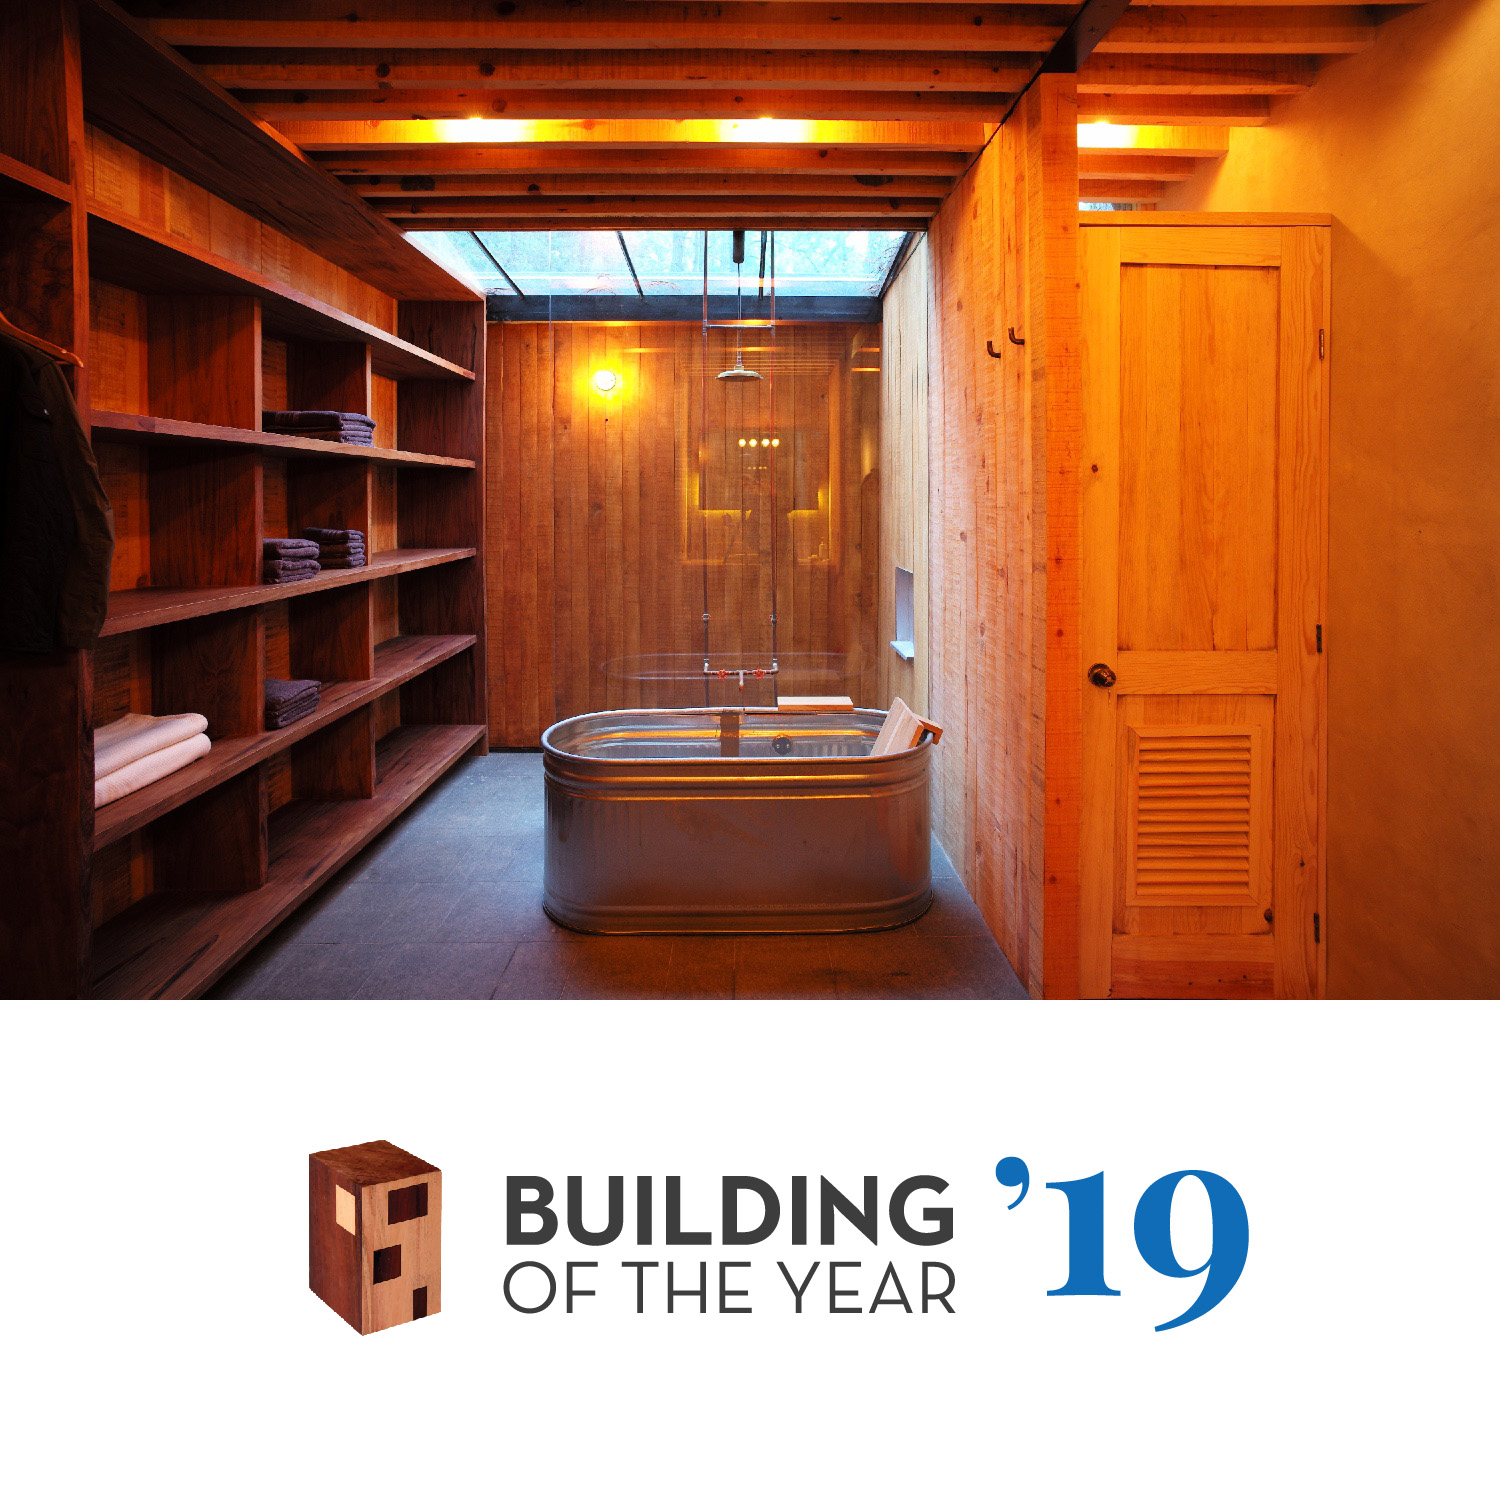 ArchDaily Builing of the Year 2019